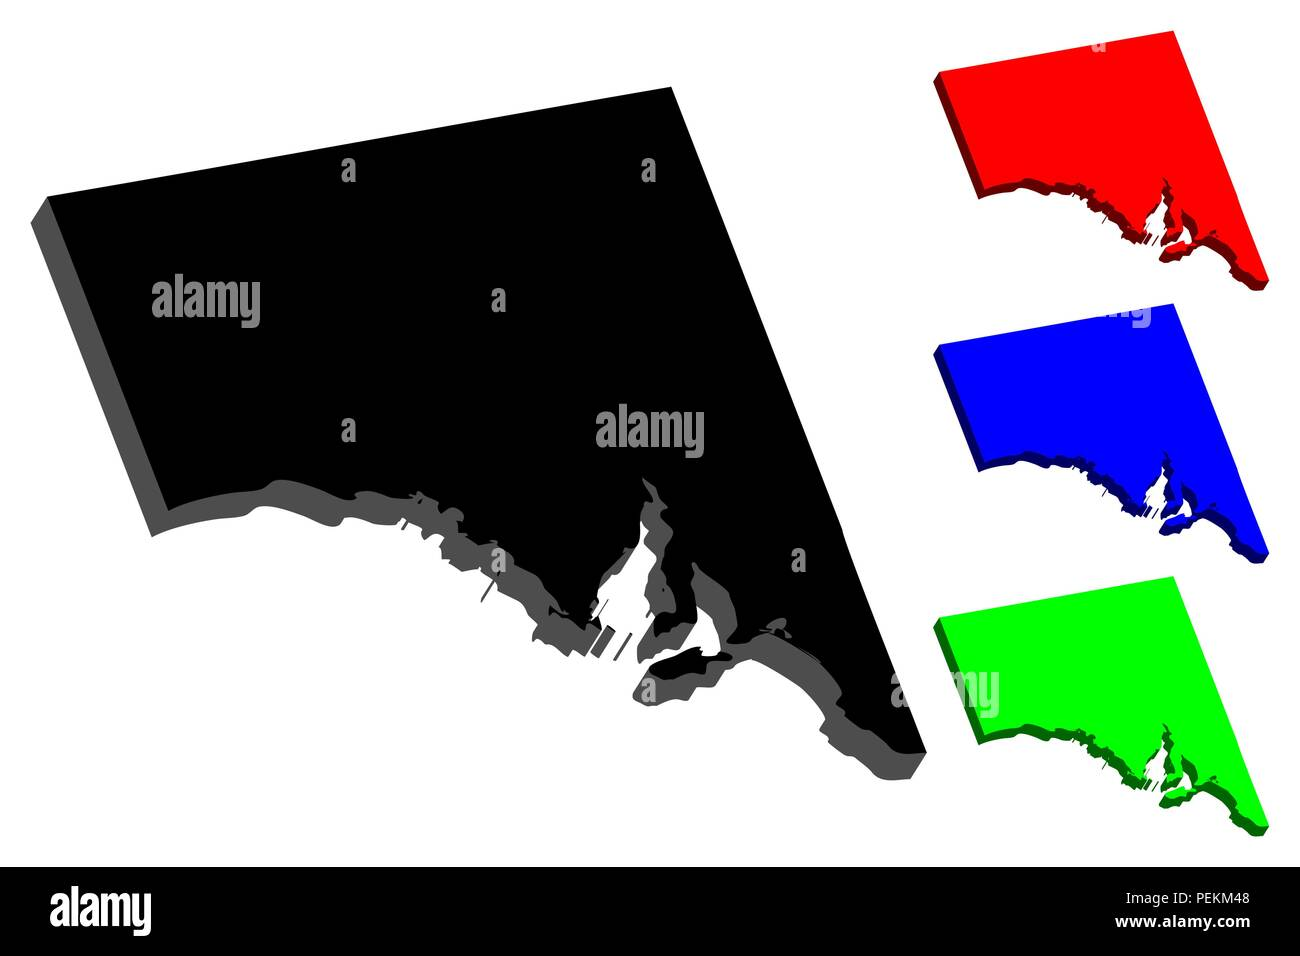 3D map of South Australia (Australian states and territories, SA) - black, red, blue and green - vector illustration Stock Vector